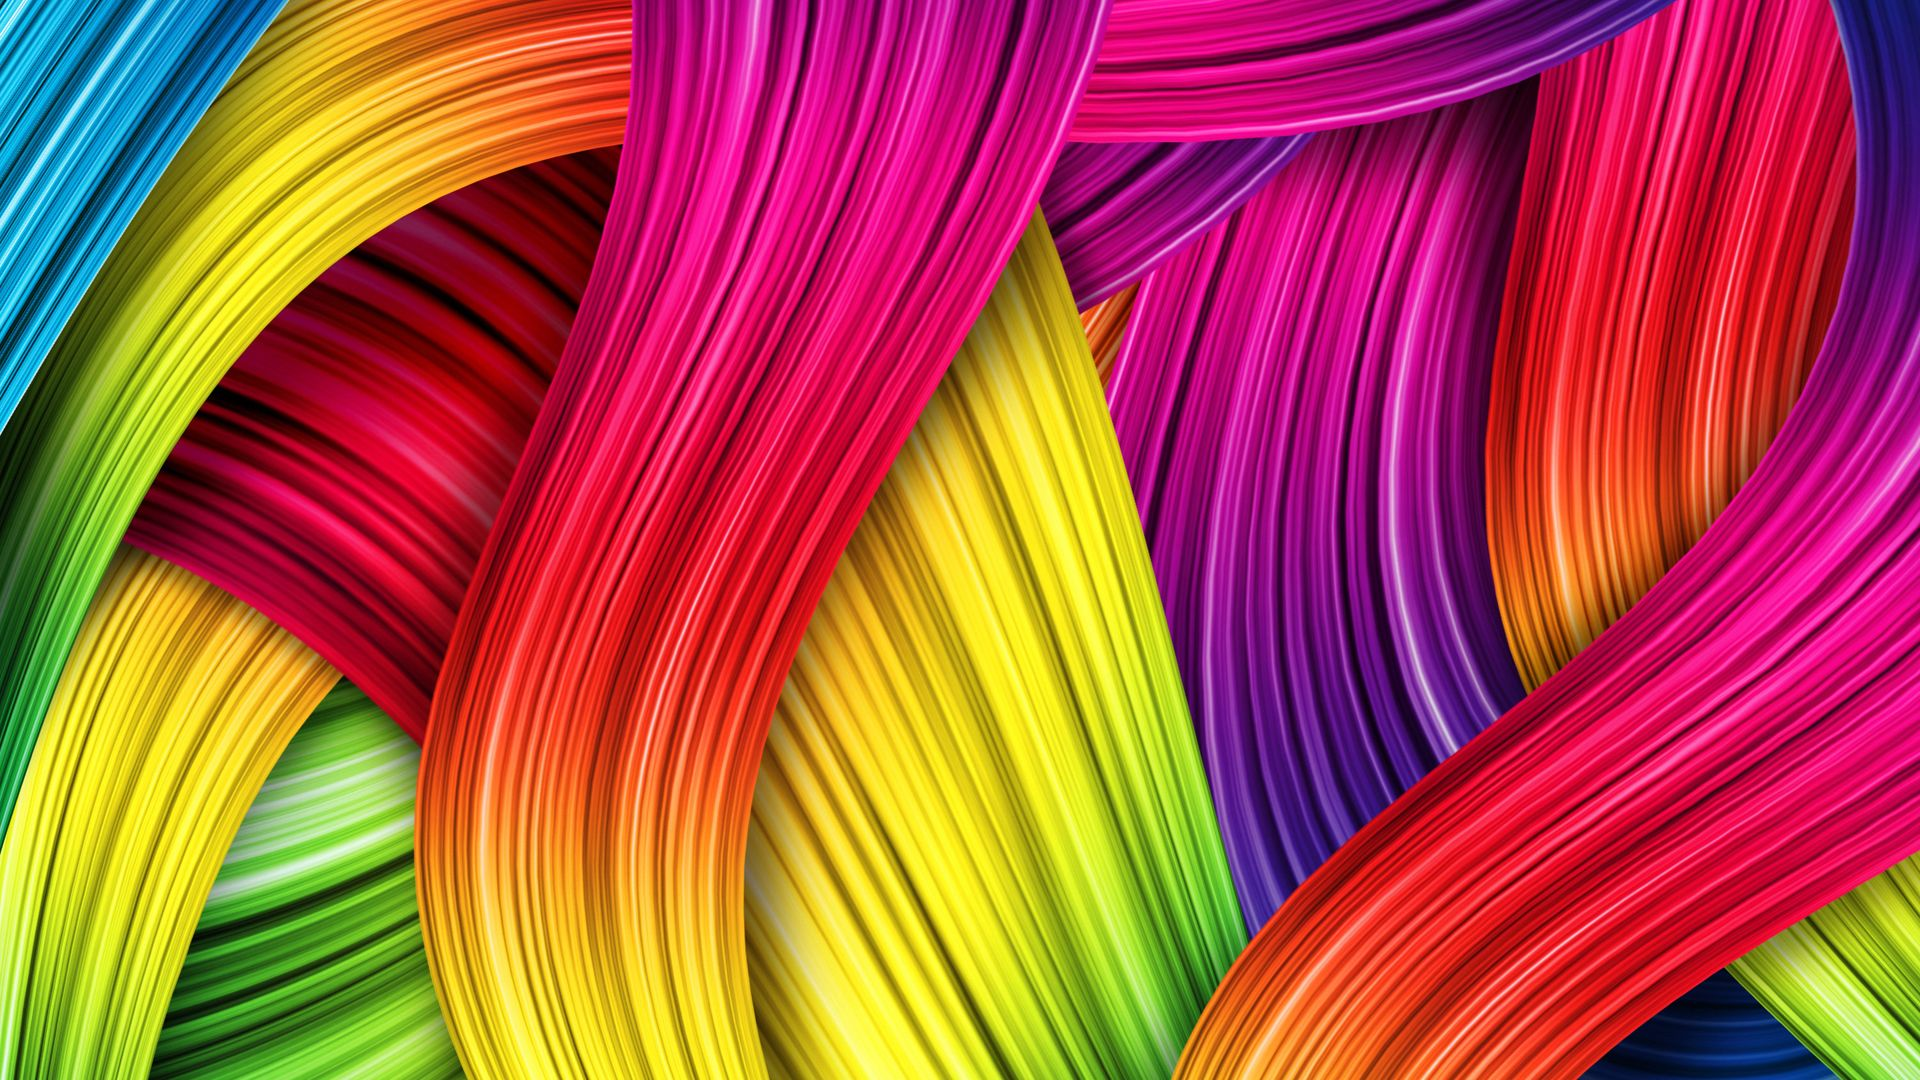 Colorful Desktop Backgrounds Related Post To Colorful